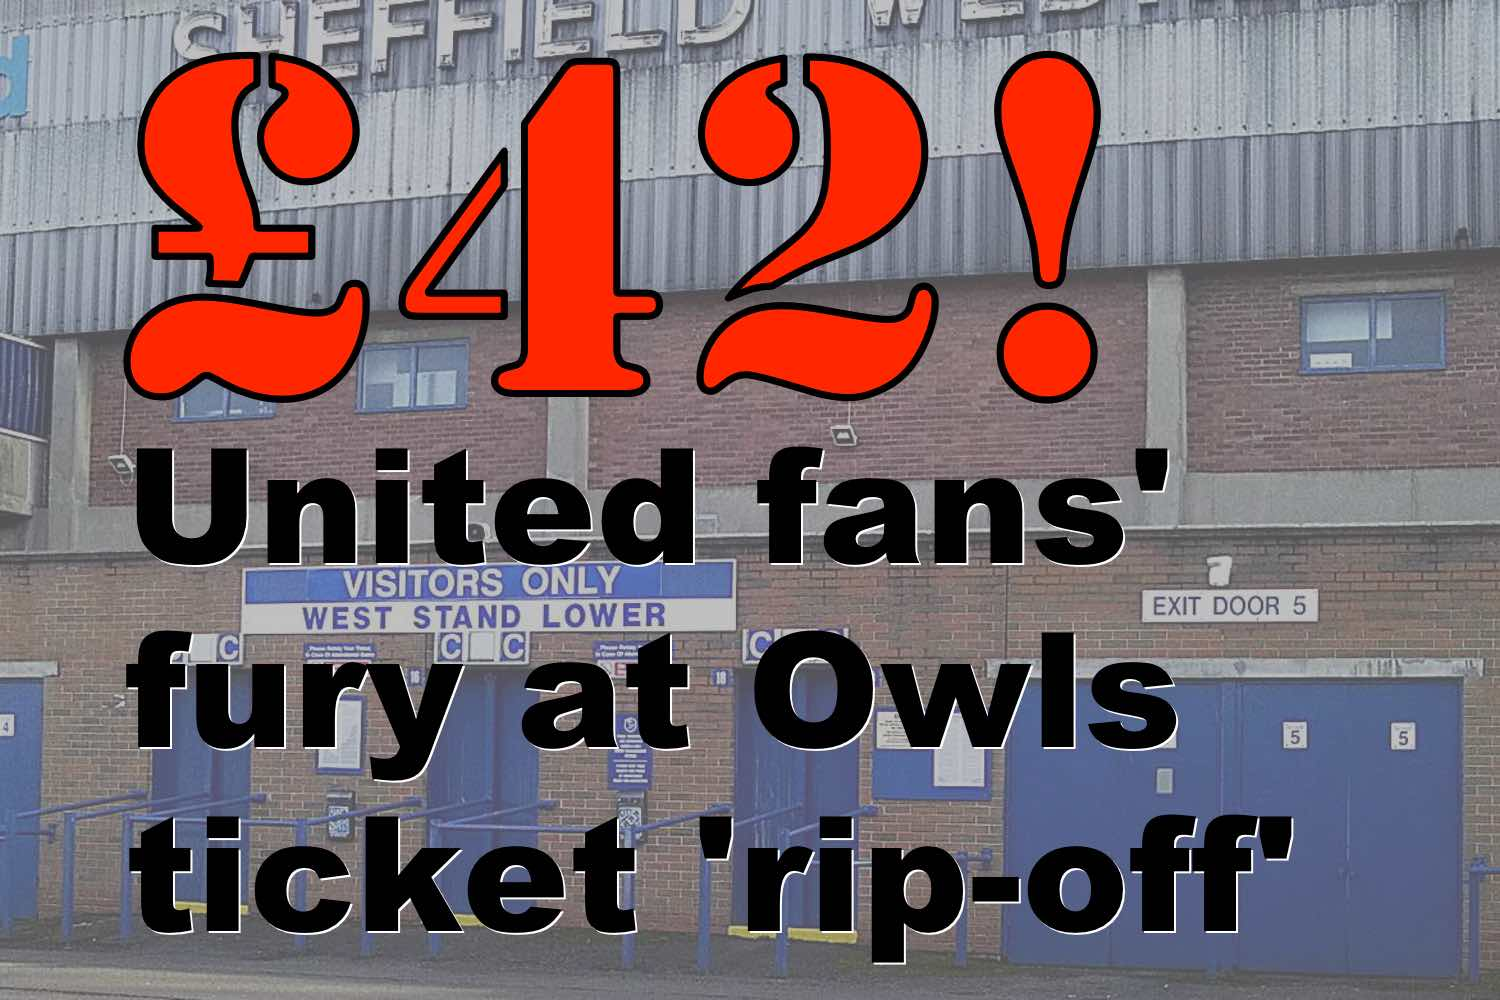 Owls ticket 'rip-off' display.jpg